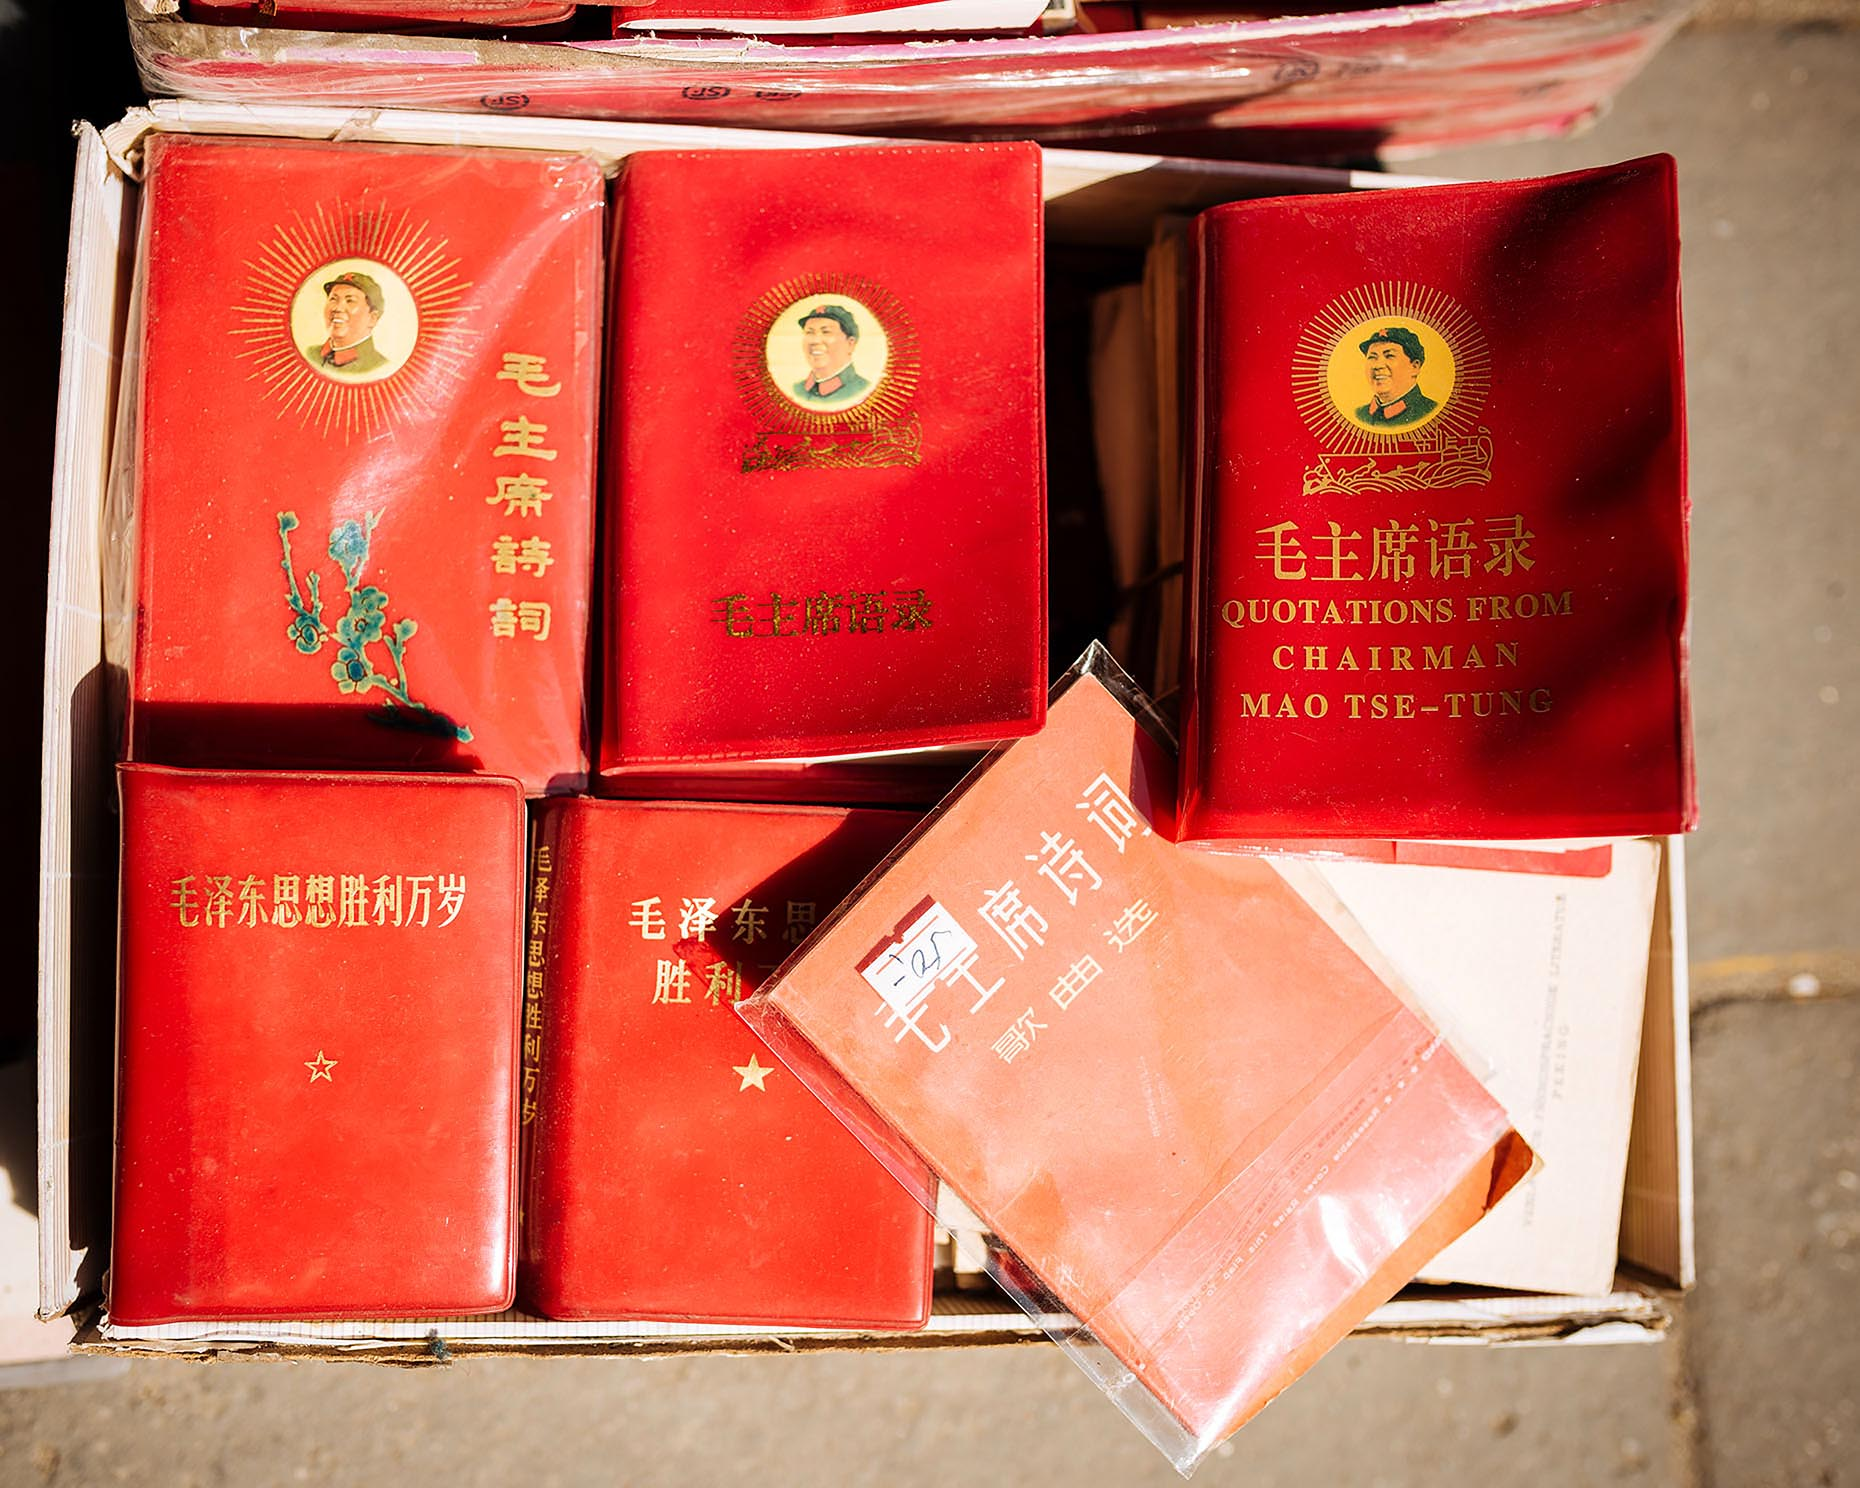 little-red-book-chairman-mao-beijing-china-25